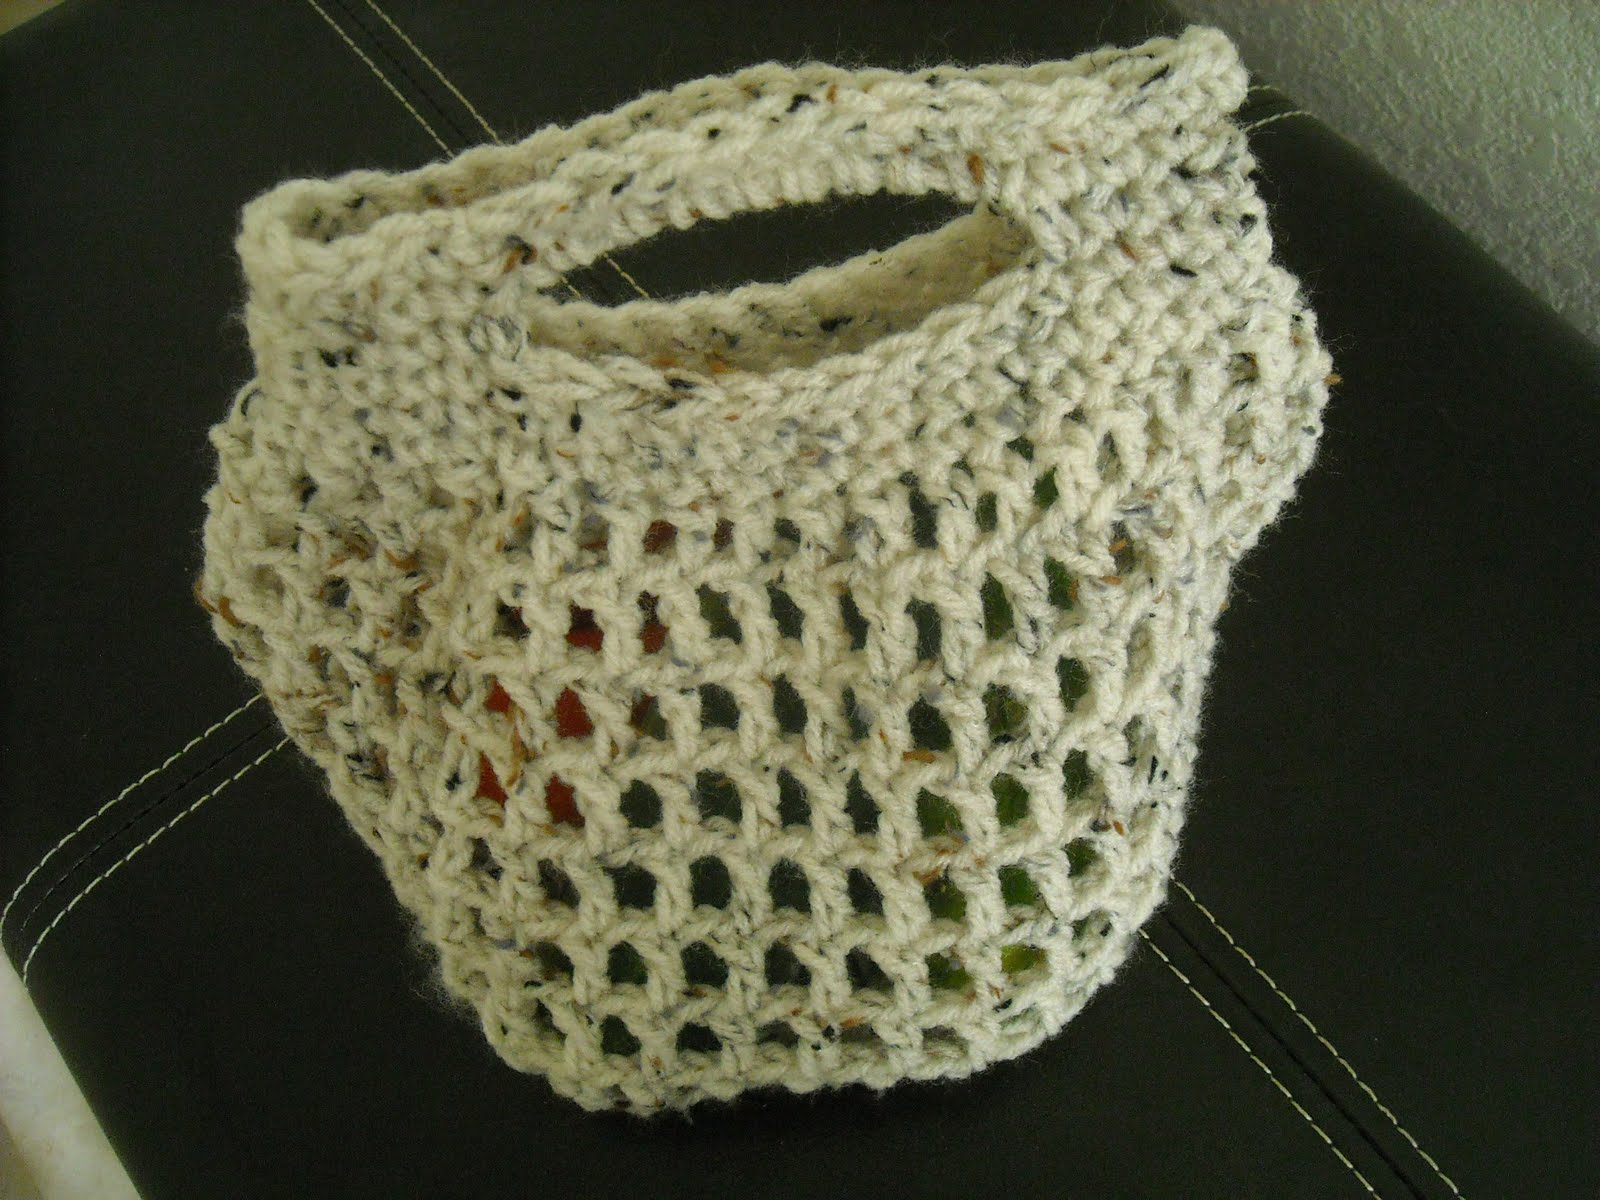 Crochet Bag Strap : Crafty Cook: Crochet Bag w/ Removable Shoulder Strap {Free Pattern}